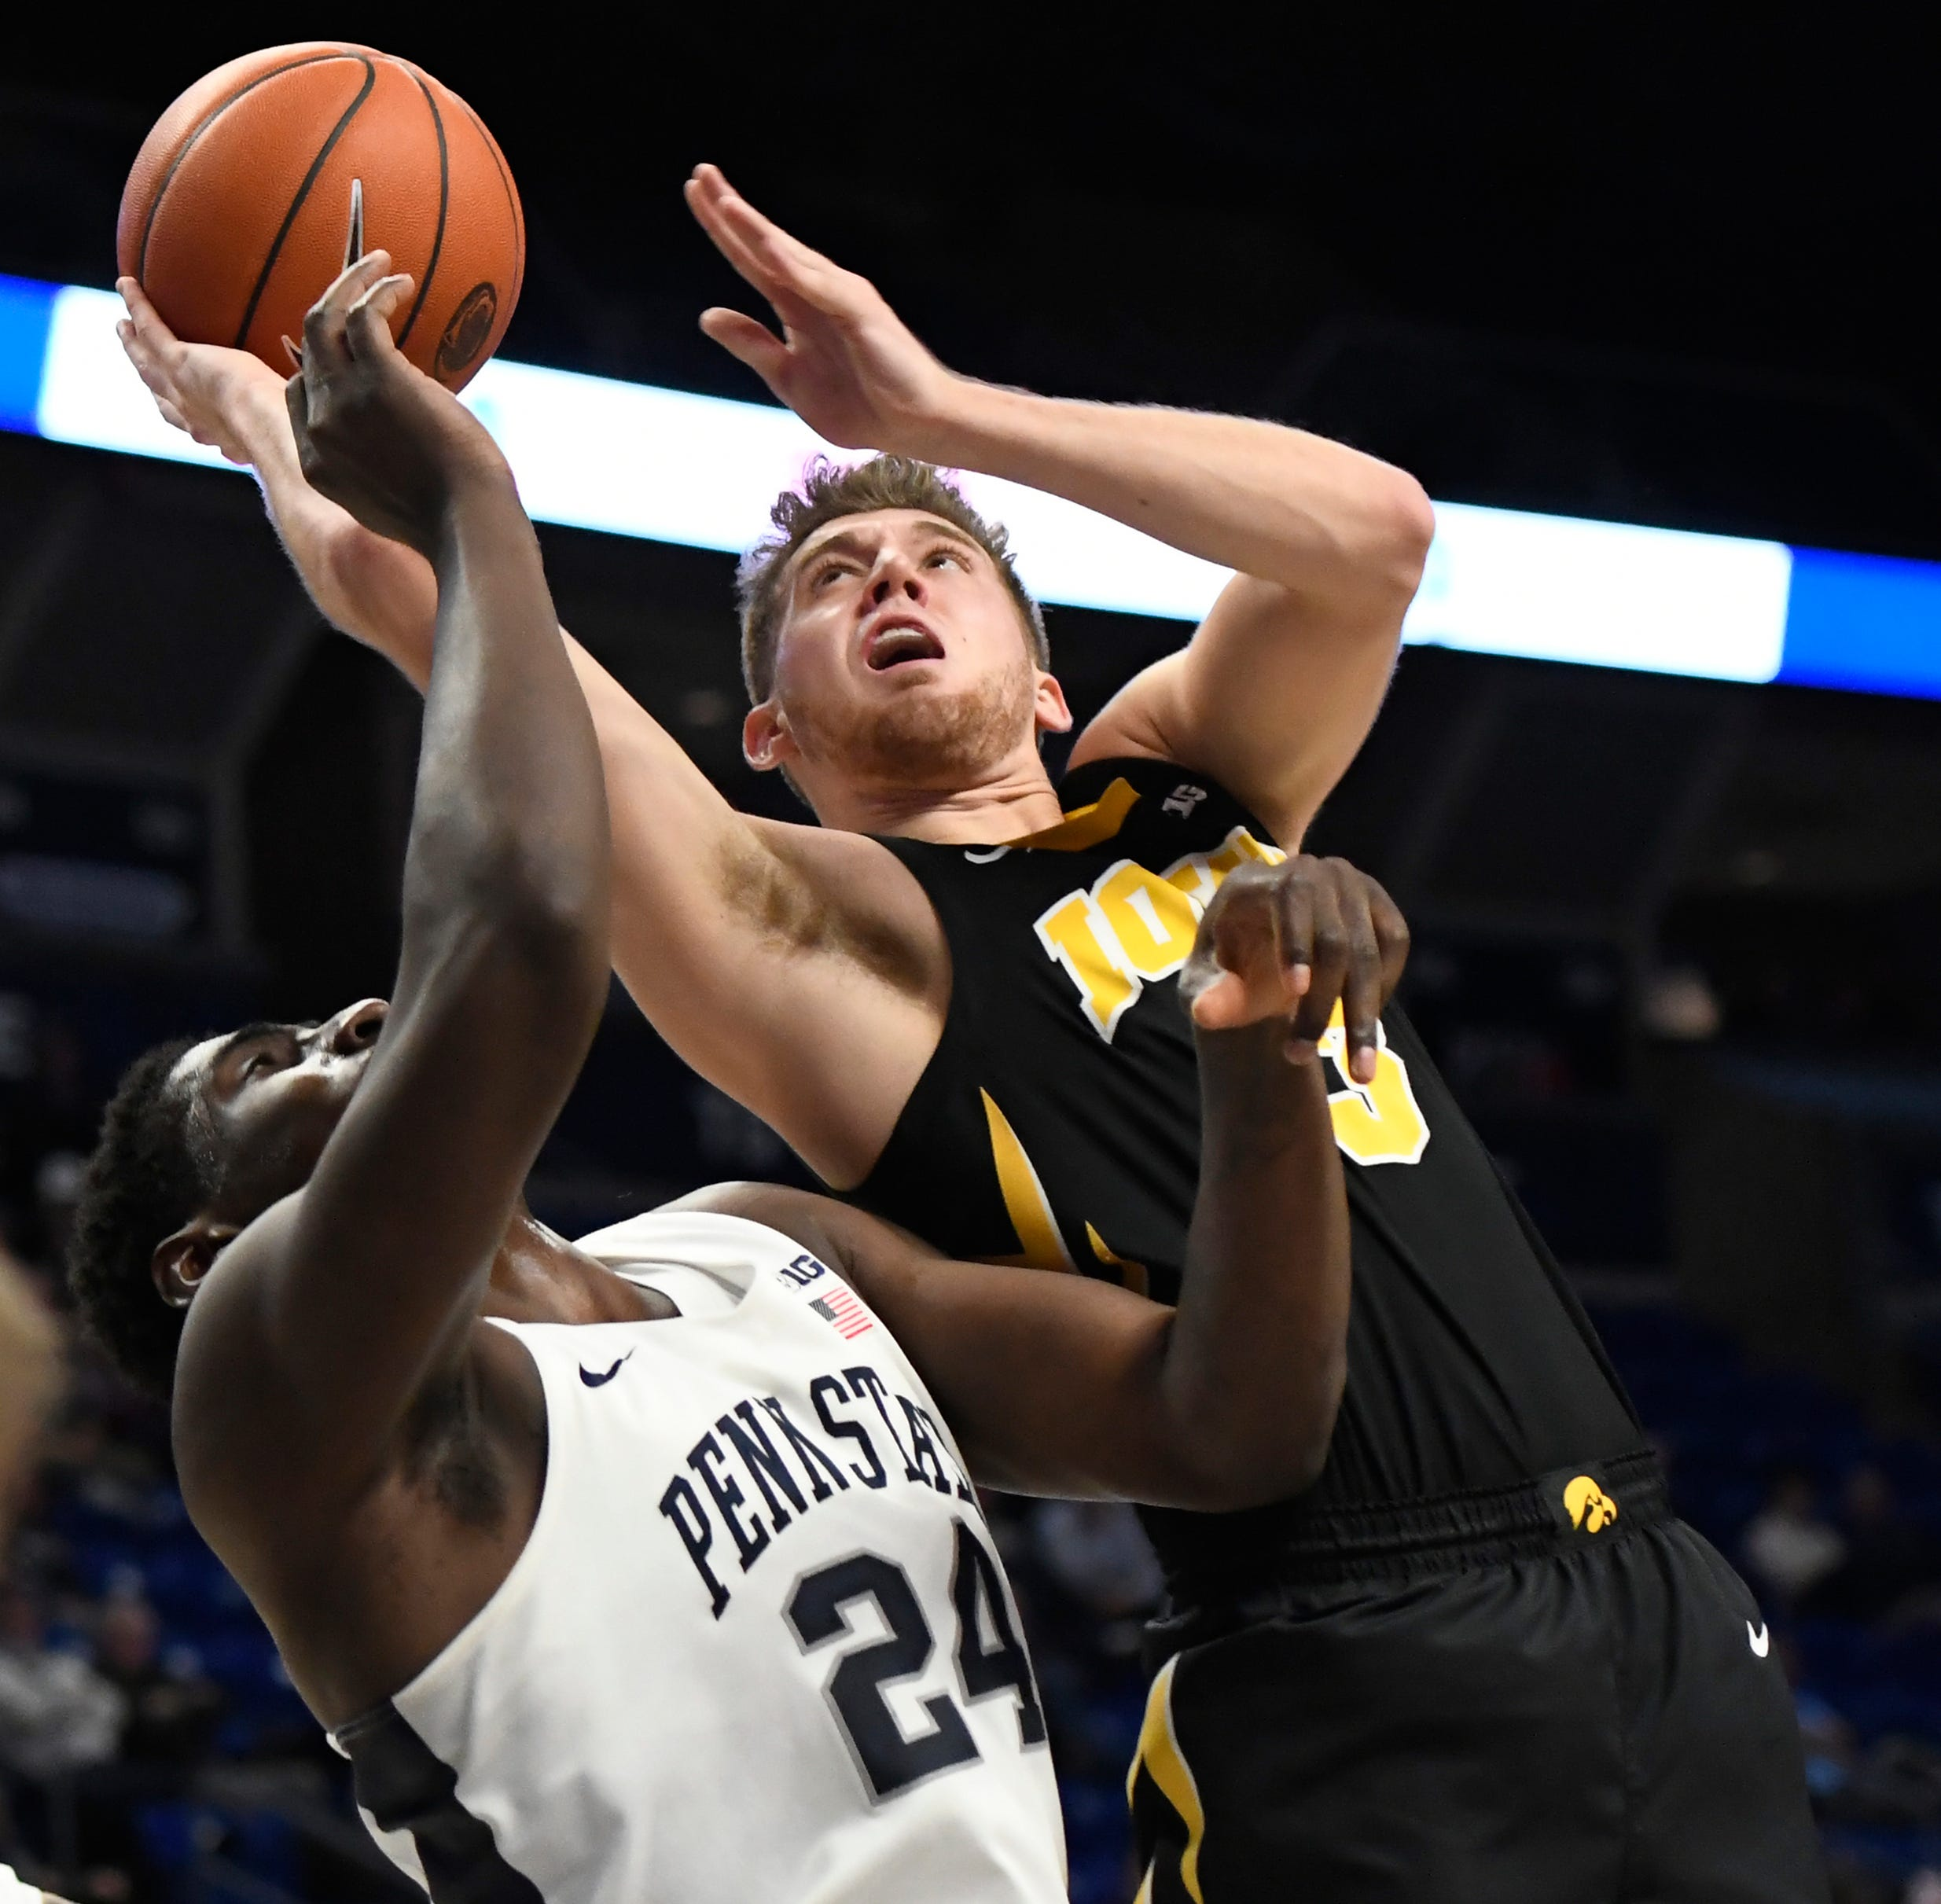 Luka Garza, Jordan Bohannon help Iowa close road win at Penn State